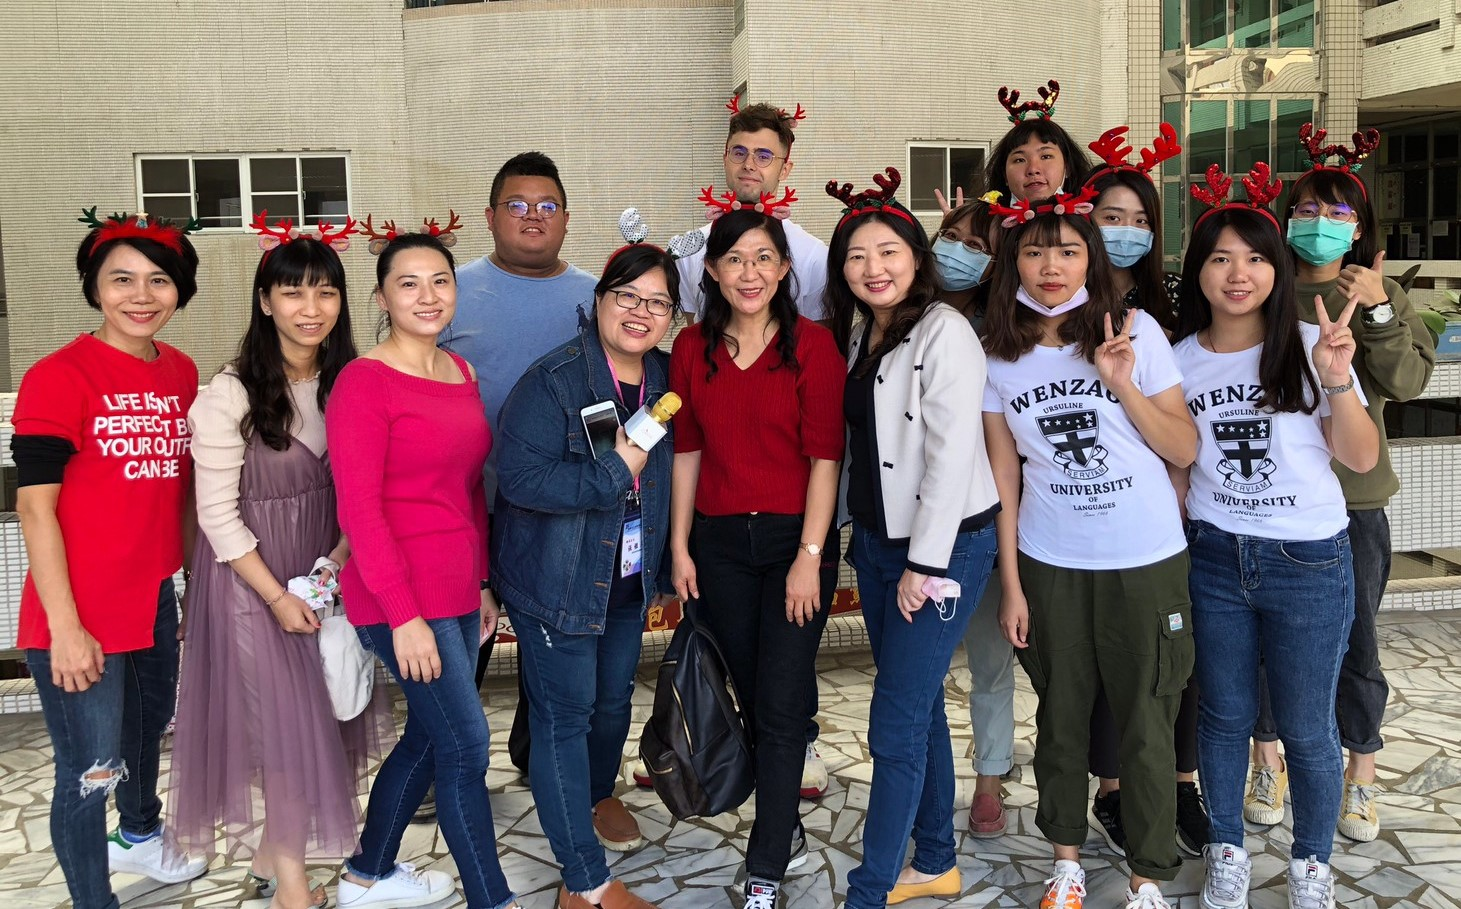 12/29/2020 Spice English up! College of English & International Studies of Wenzao Works with Lunghua Junior High School on English Teaching Program